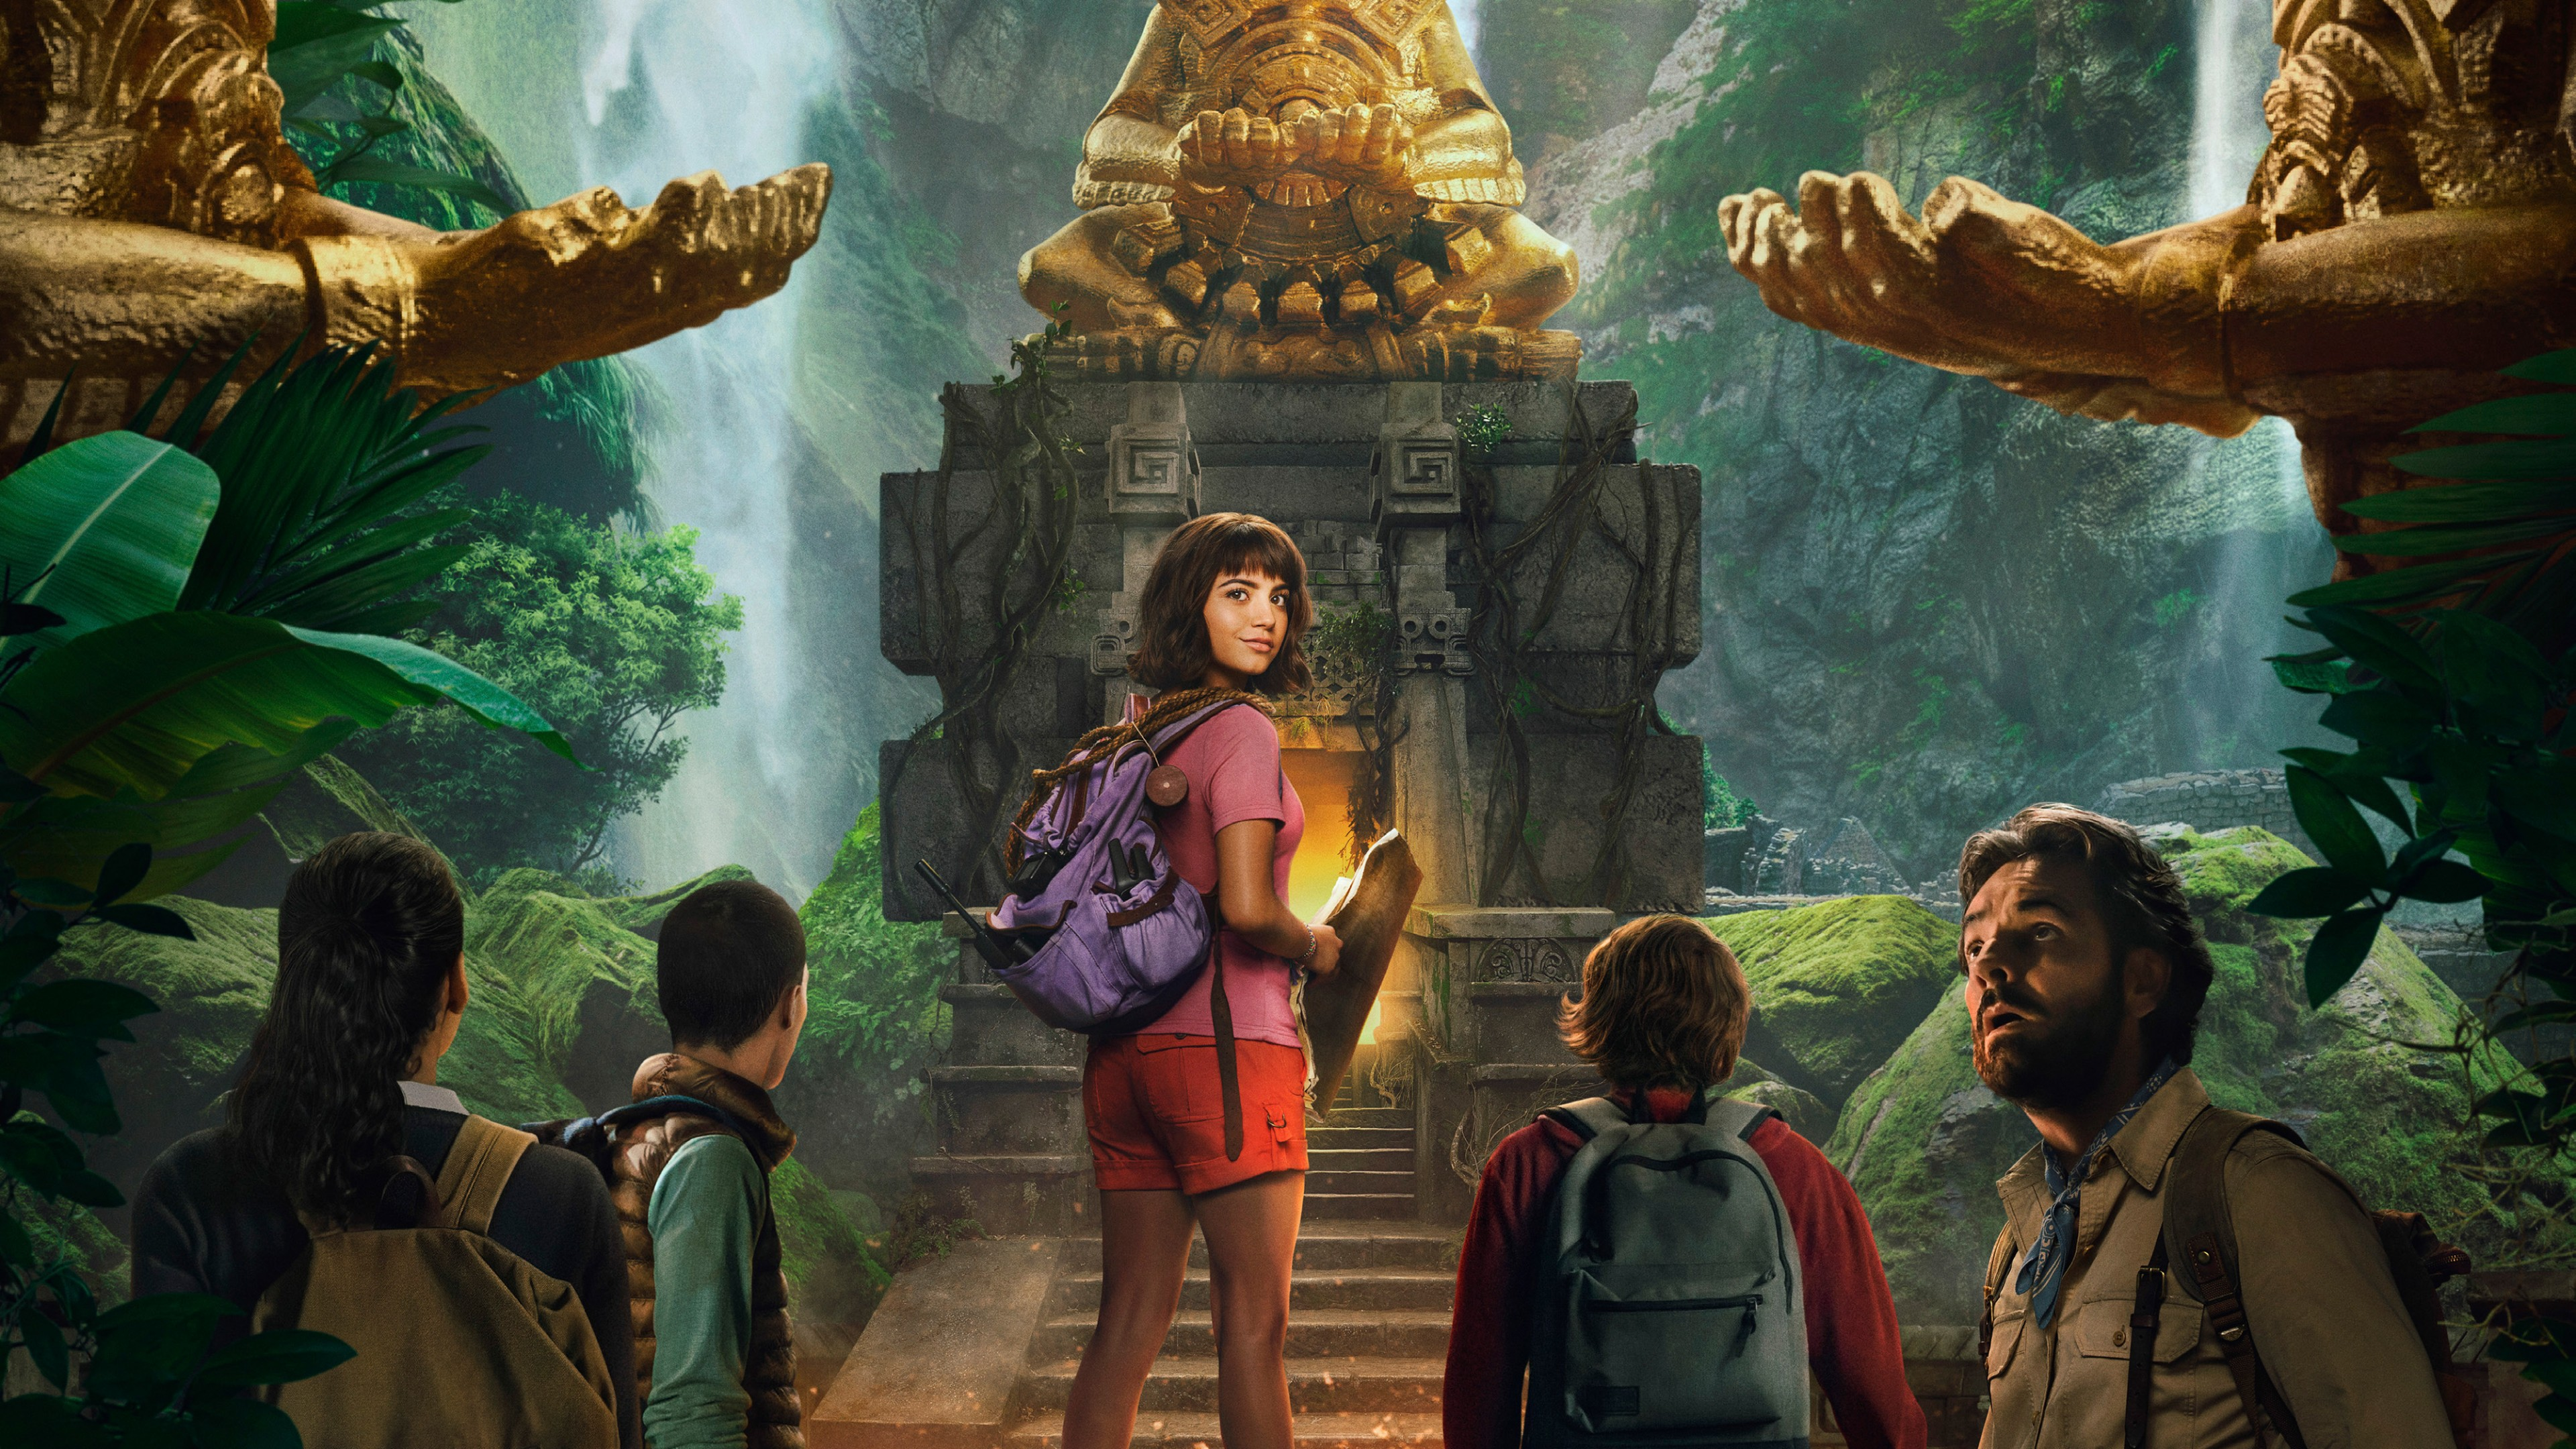 Dora And The Lost City Of Gold Poster HD Wallpaper 4K 3840x2160